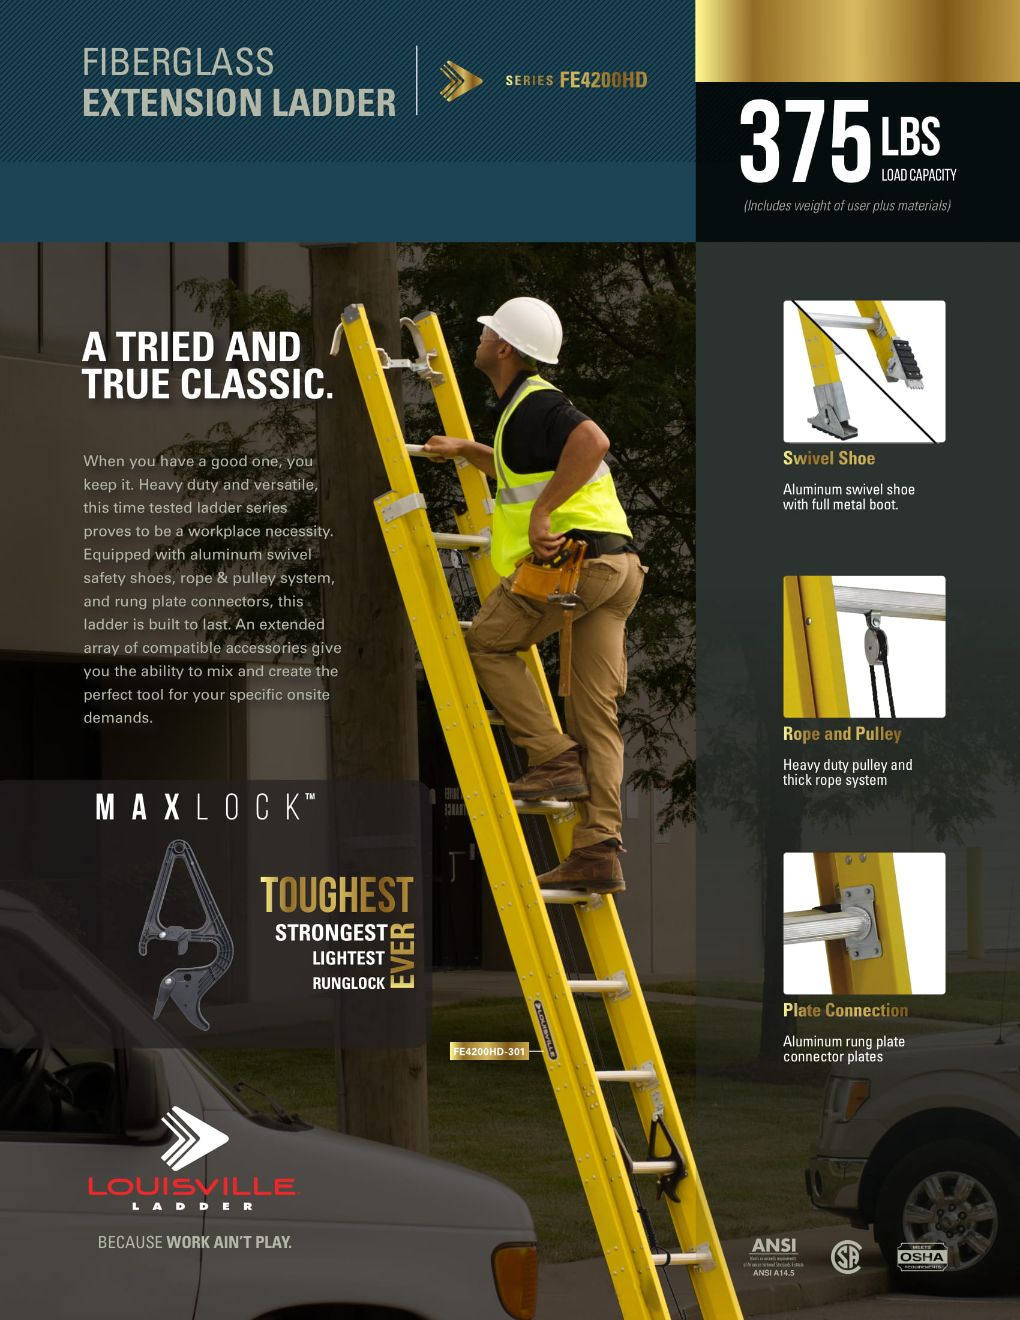 FE4200 Extension Ladder Flyer and Spec Sheet Marketing Material Image